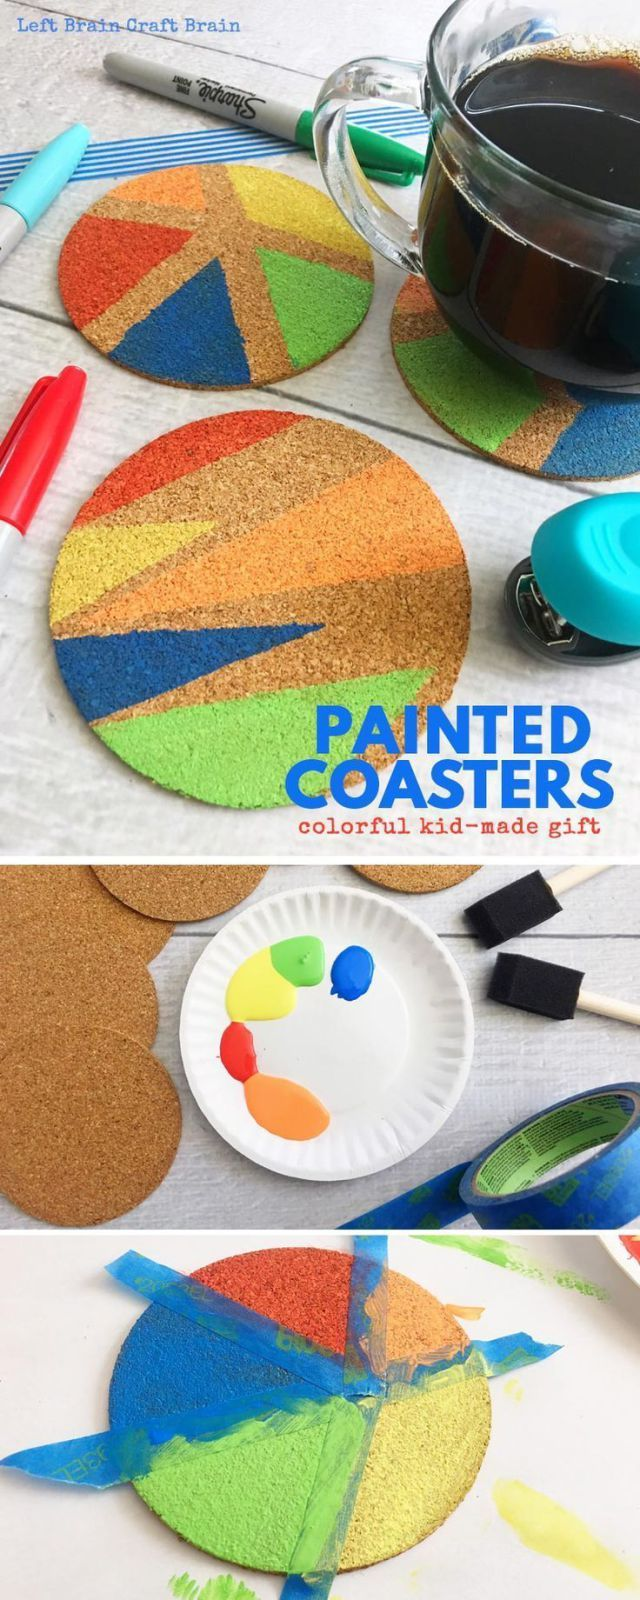 Create These Beautiful DIY Painted Coasters For Your Mothers Day - Create coasters from photos